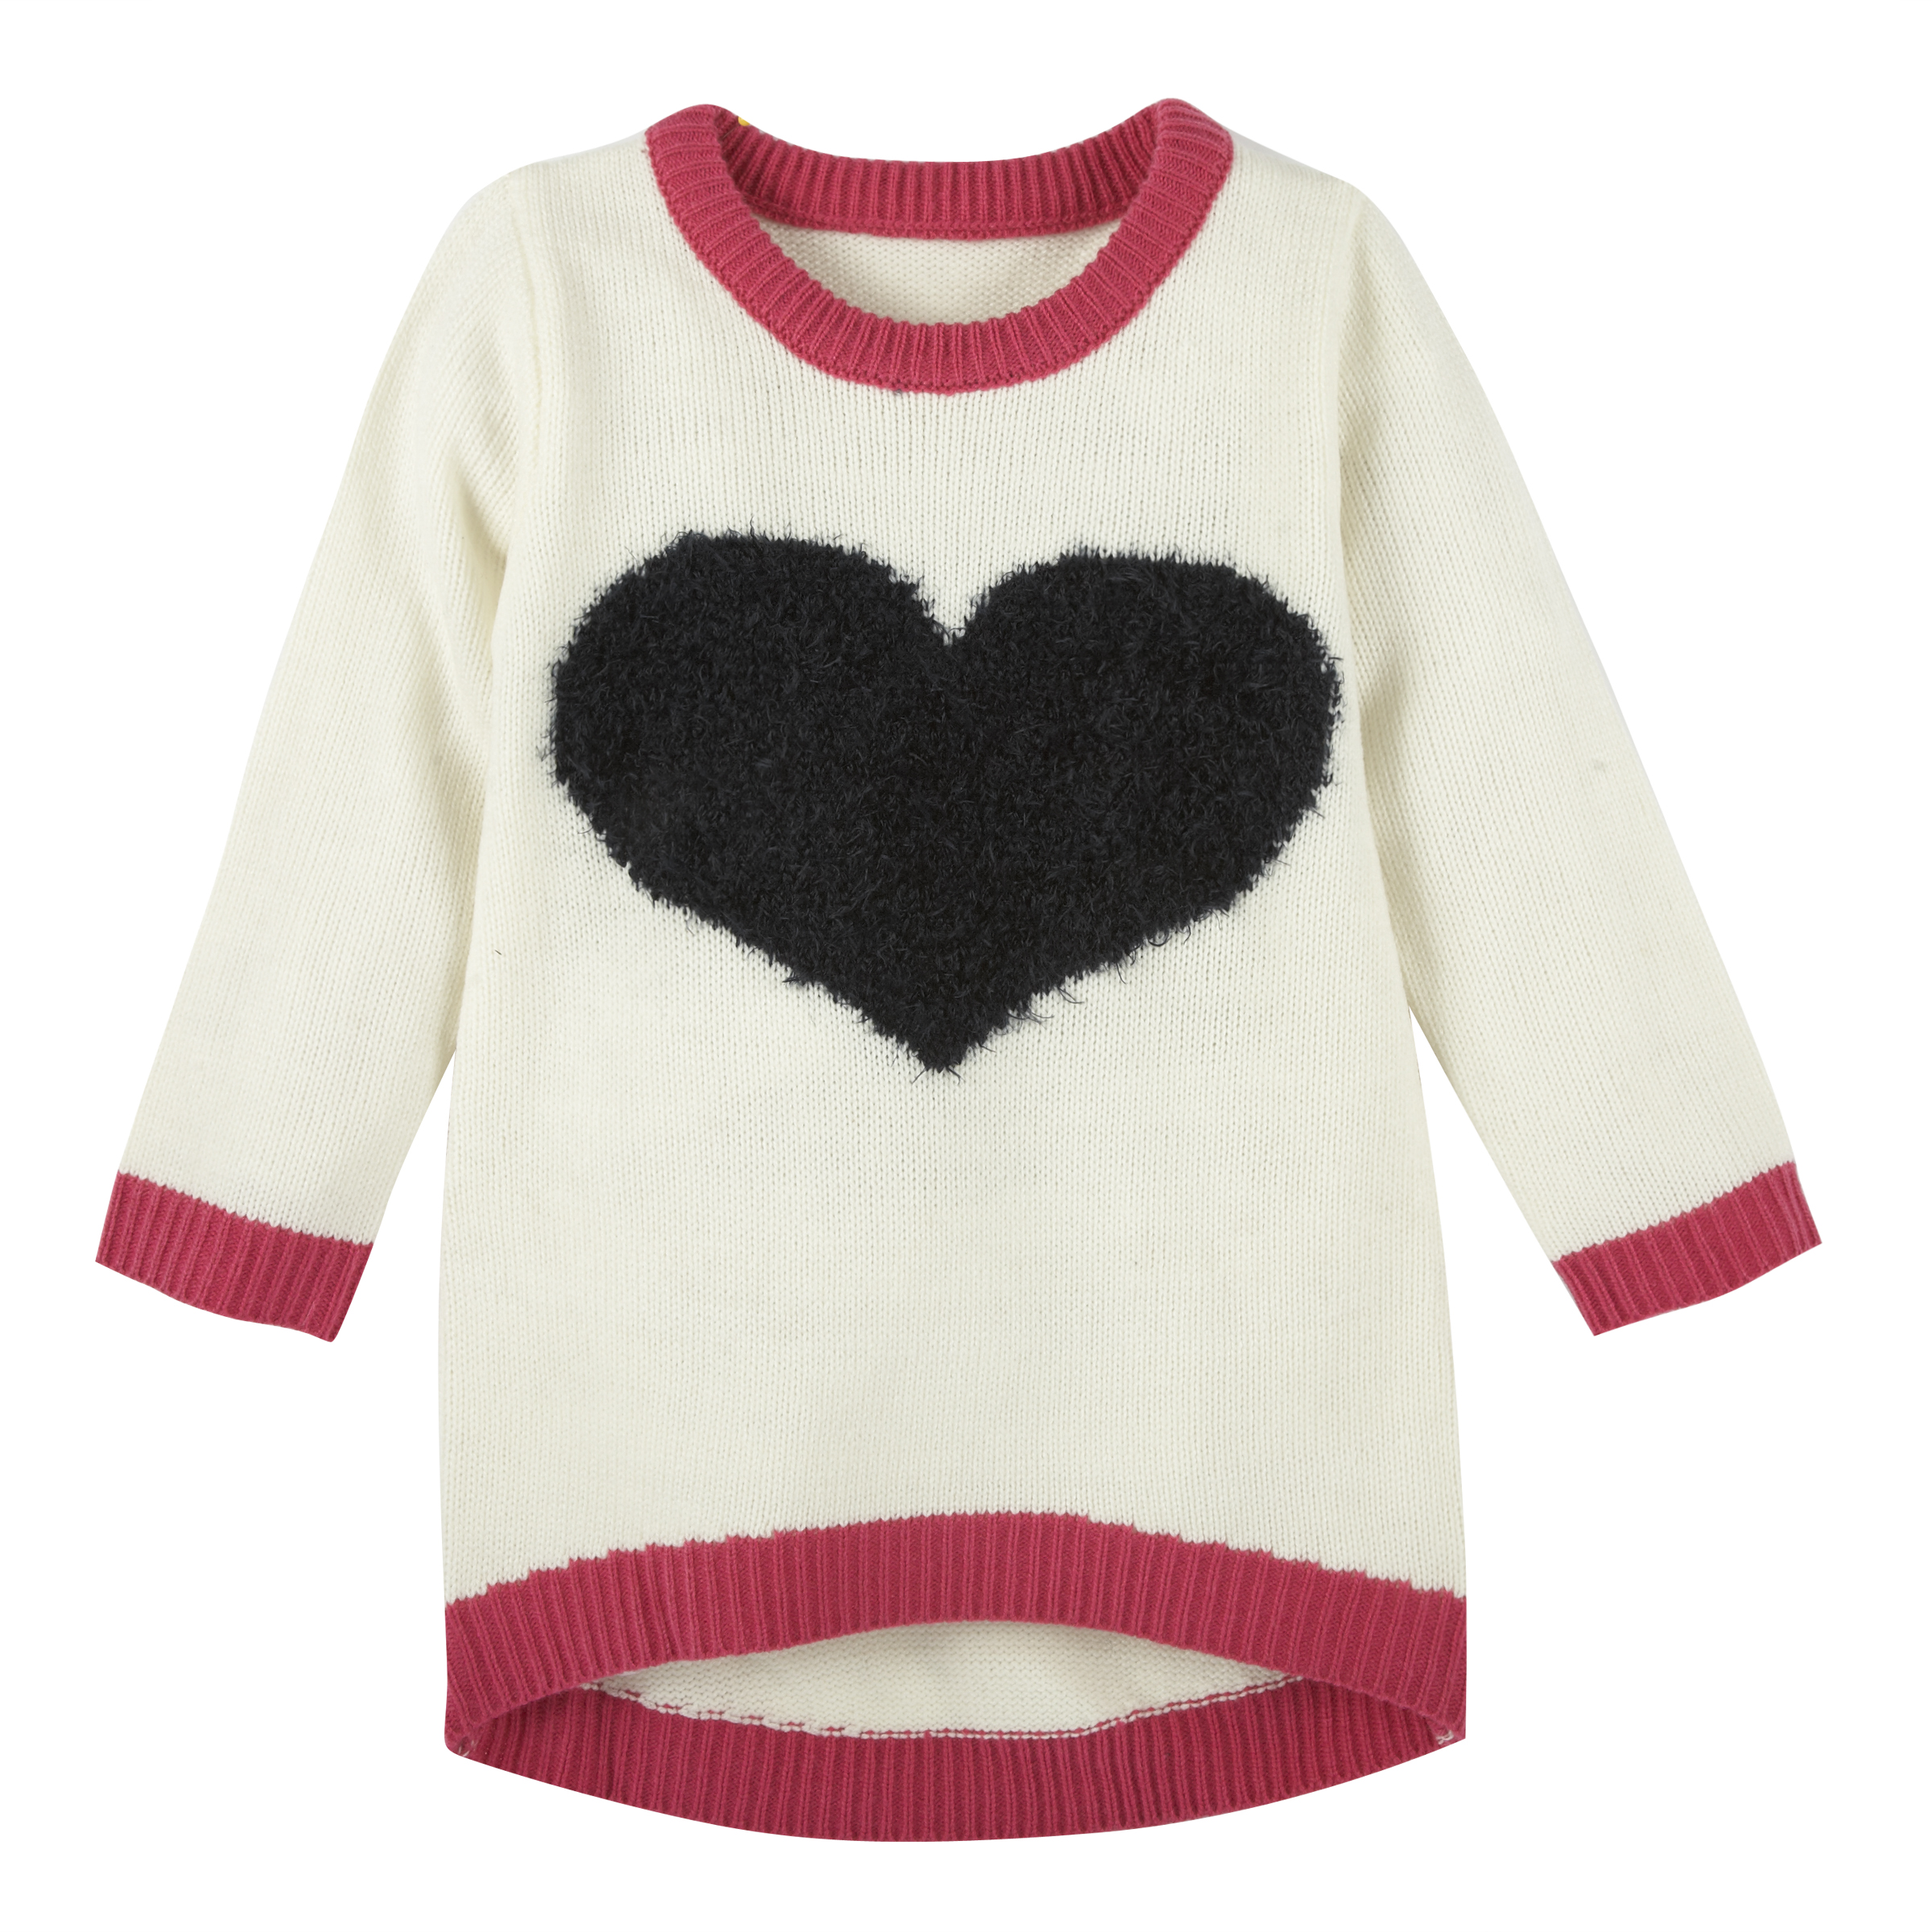 Andy & Evan Fuzzy Heart tunic | Olive and Gray